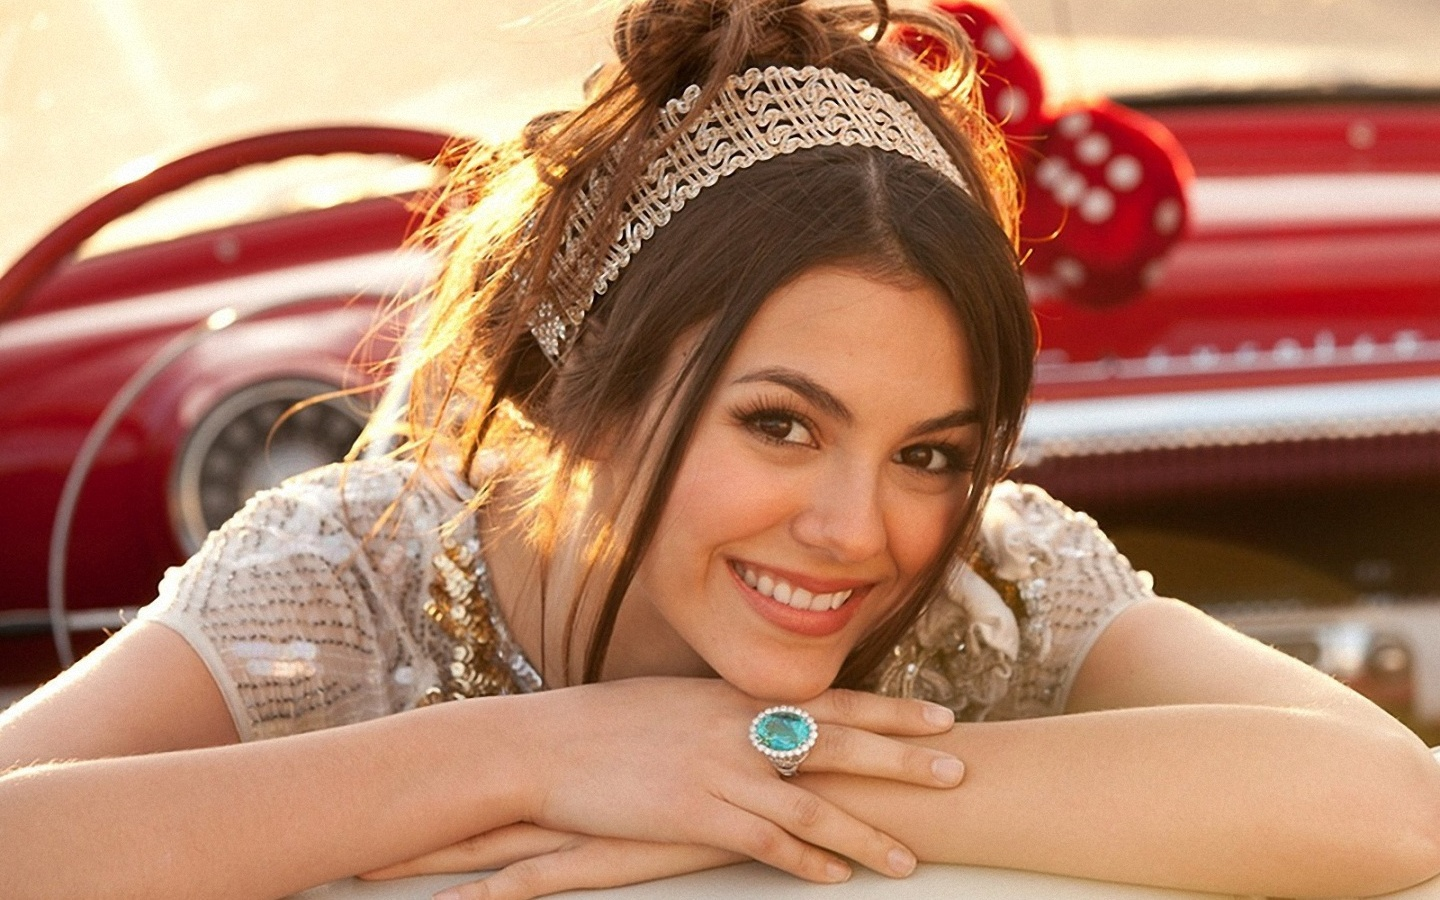 Victoria Justice Cute  amp  Lovely Wallpapers 2012Victoria Justice Wallpaper 2012